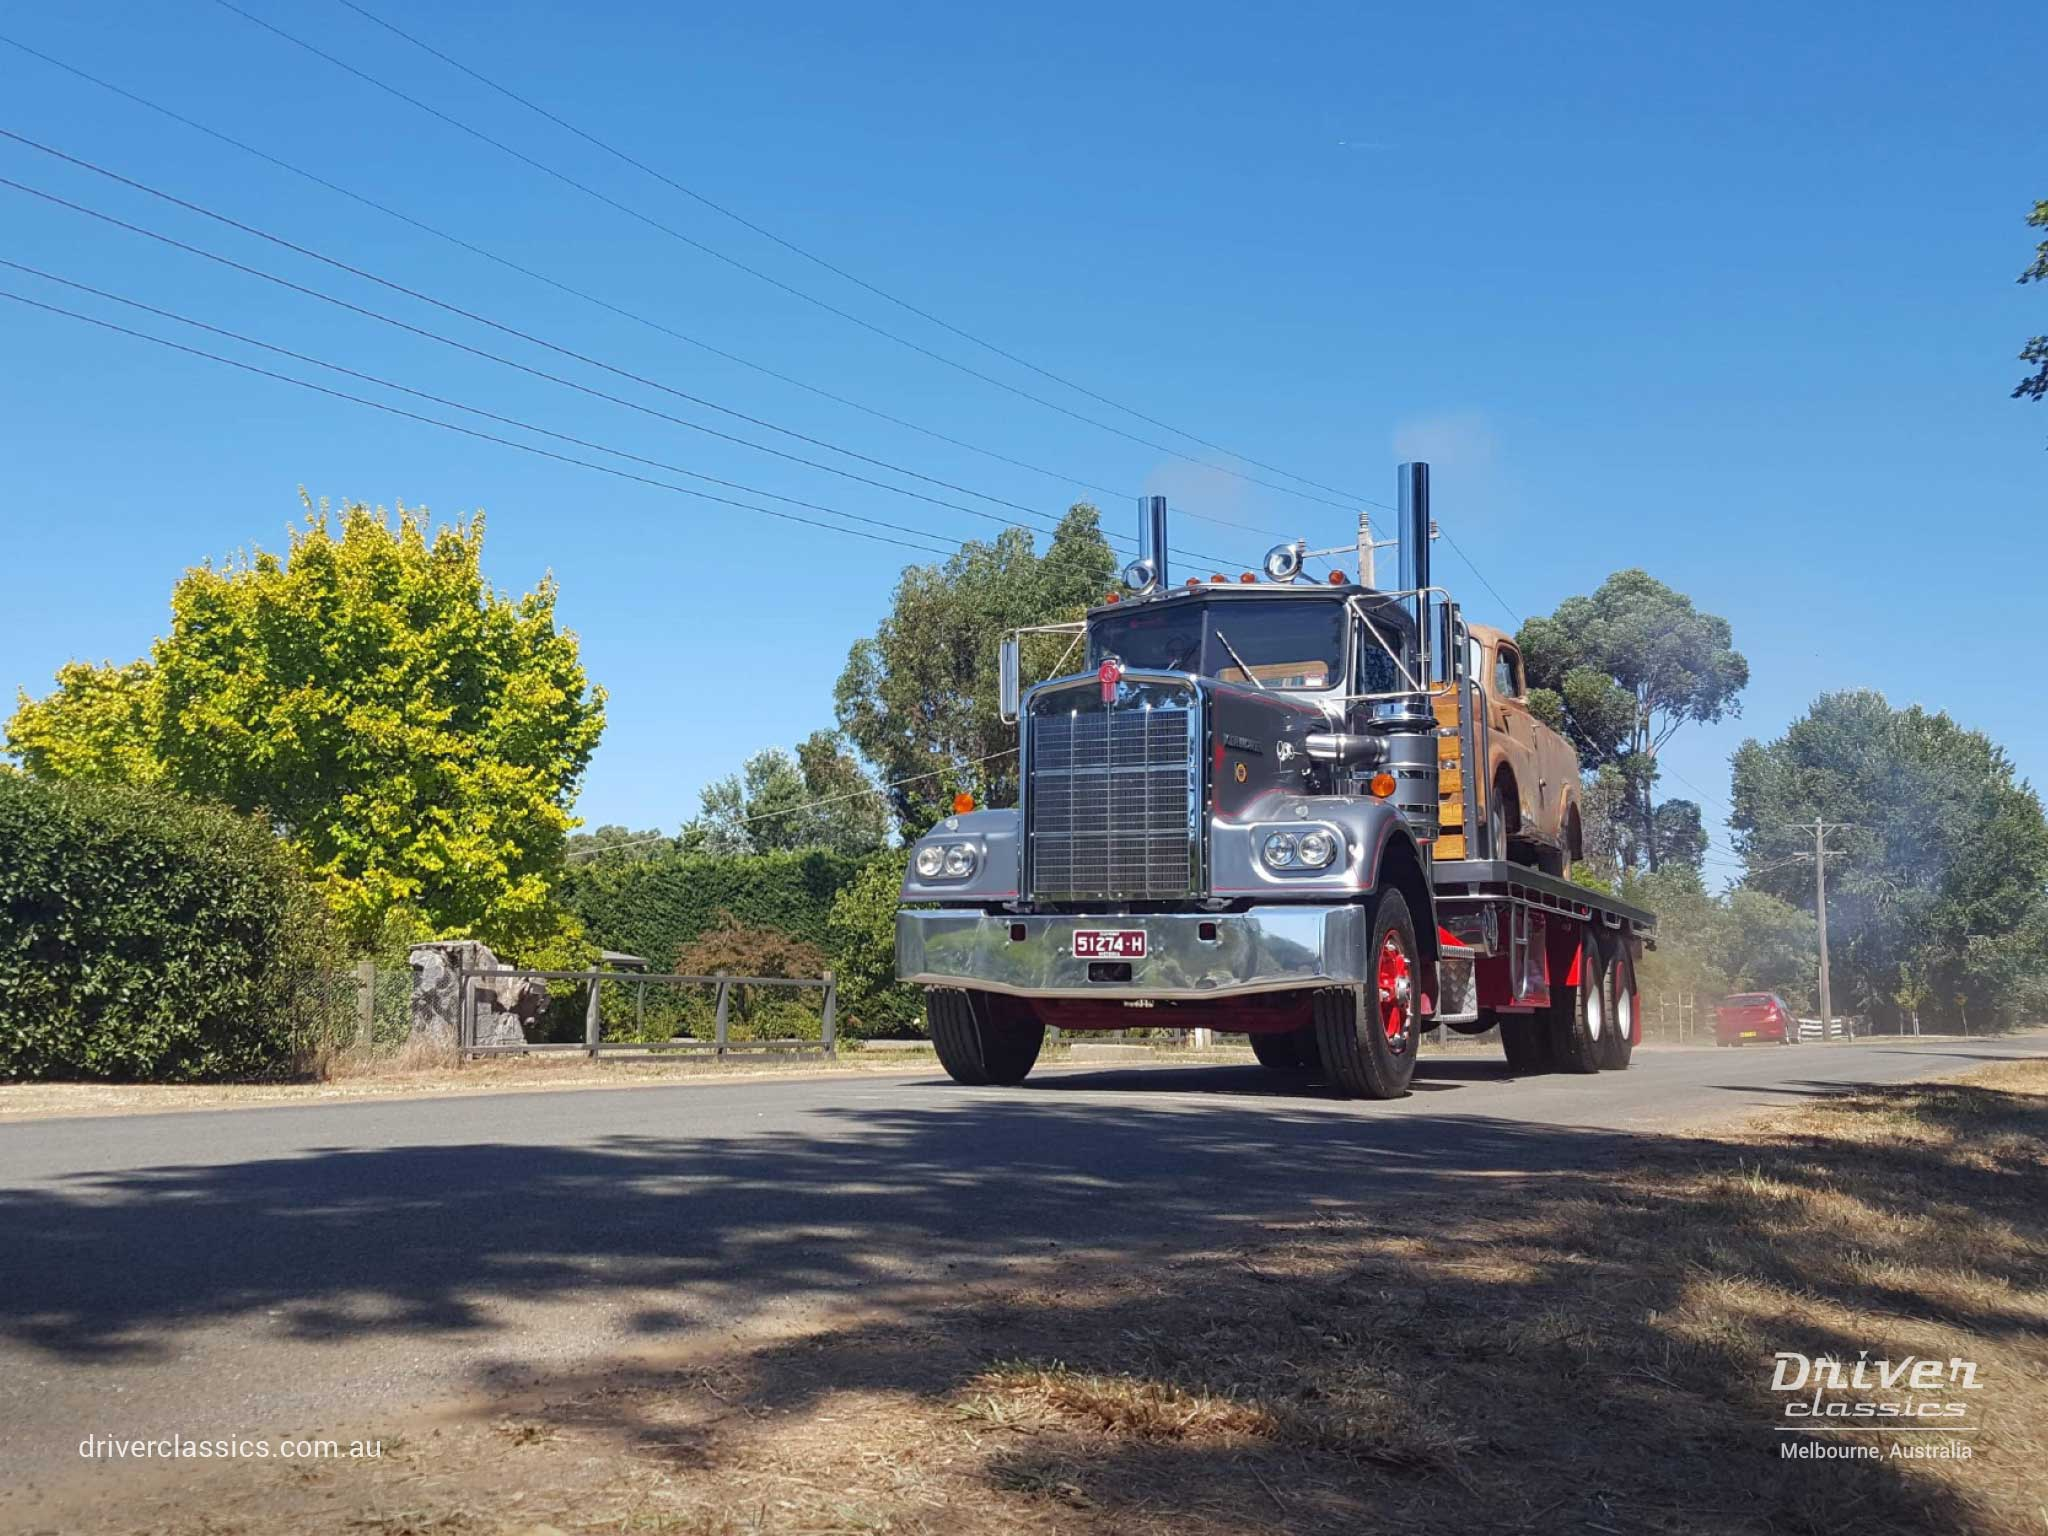 1977 Kenworth W925 S2 with 1950 Dodge on the back, 'accelerating', Lancefield VIC, Photo taken February 2019